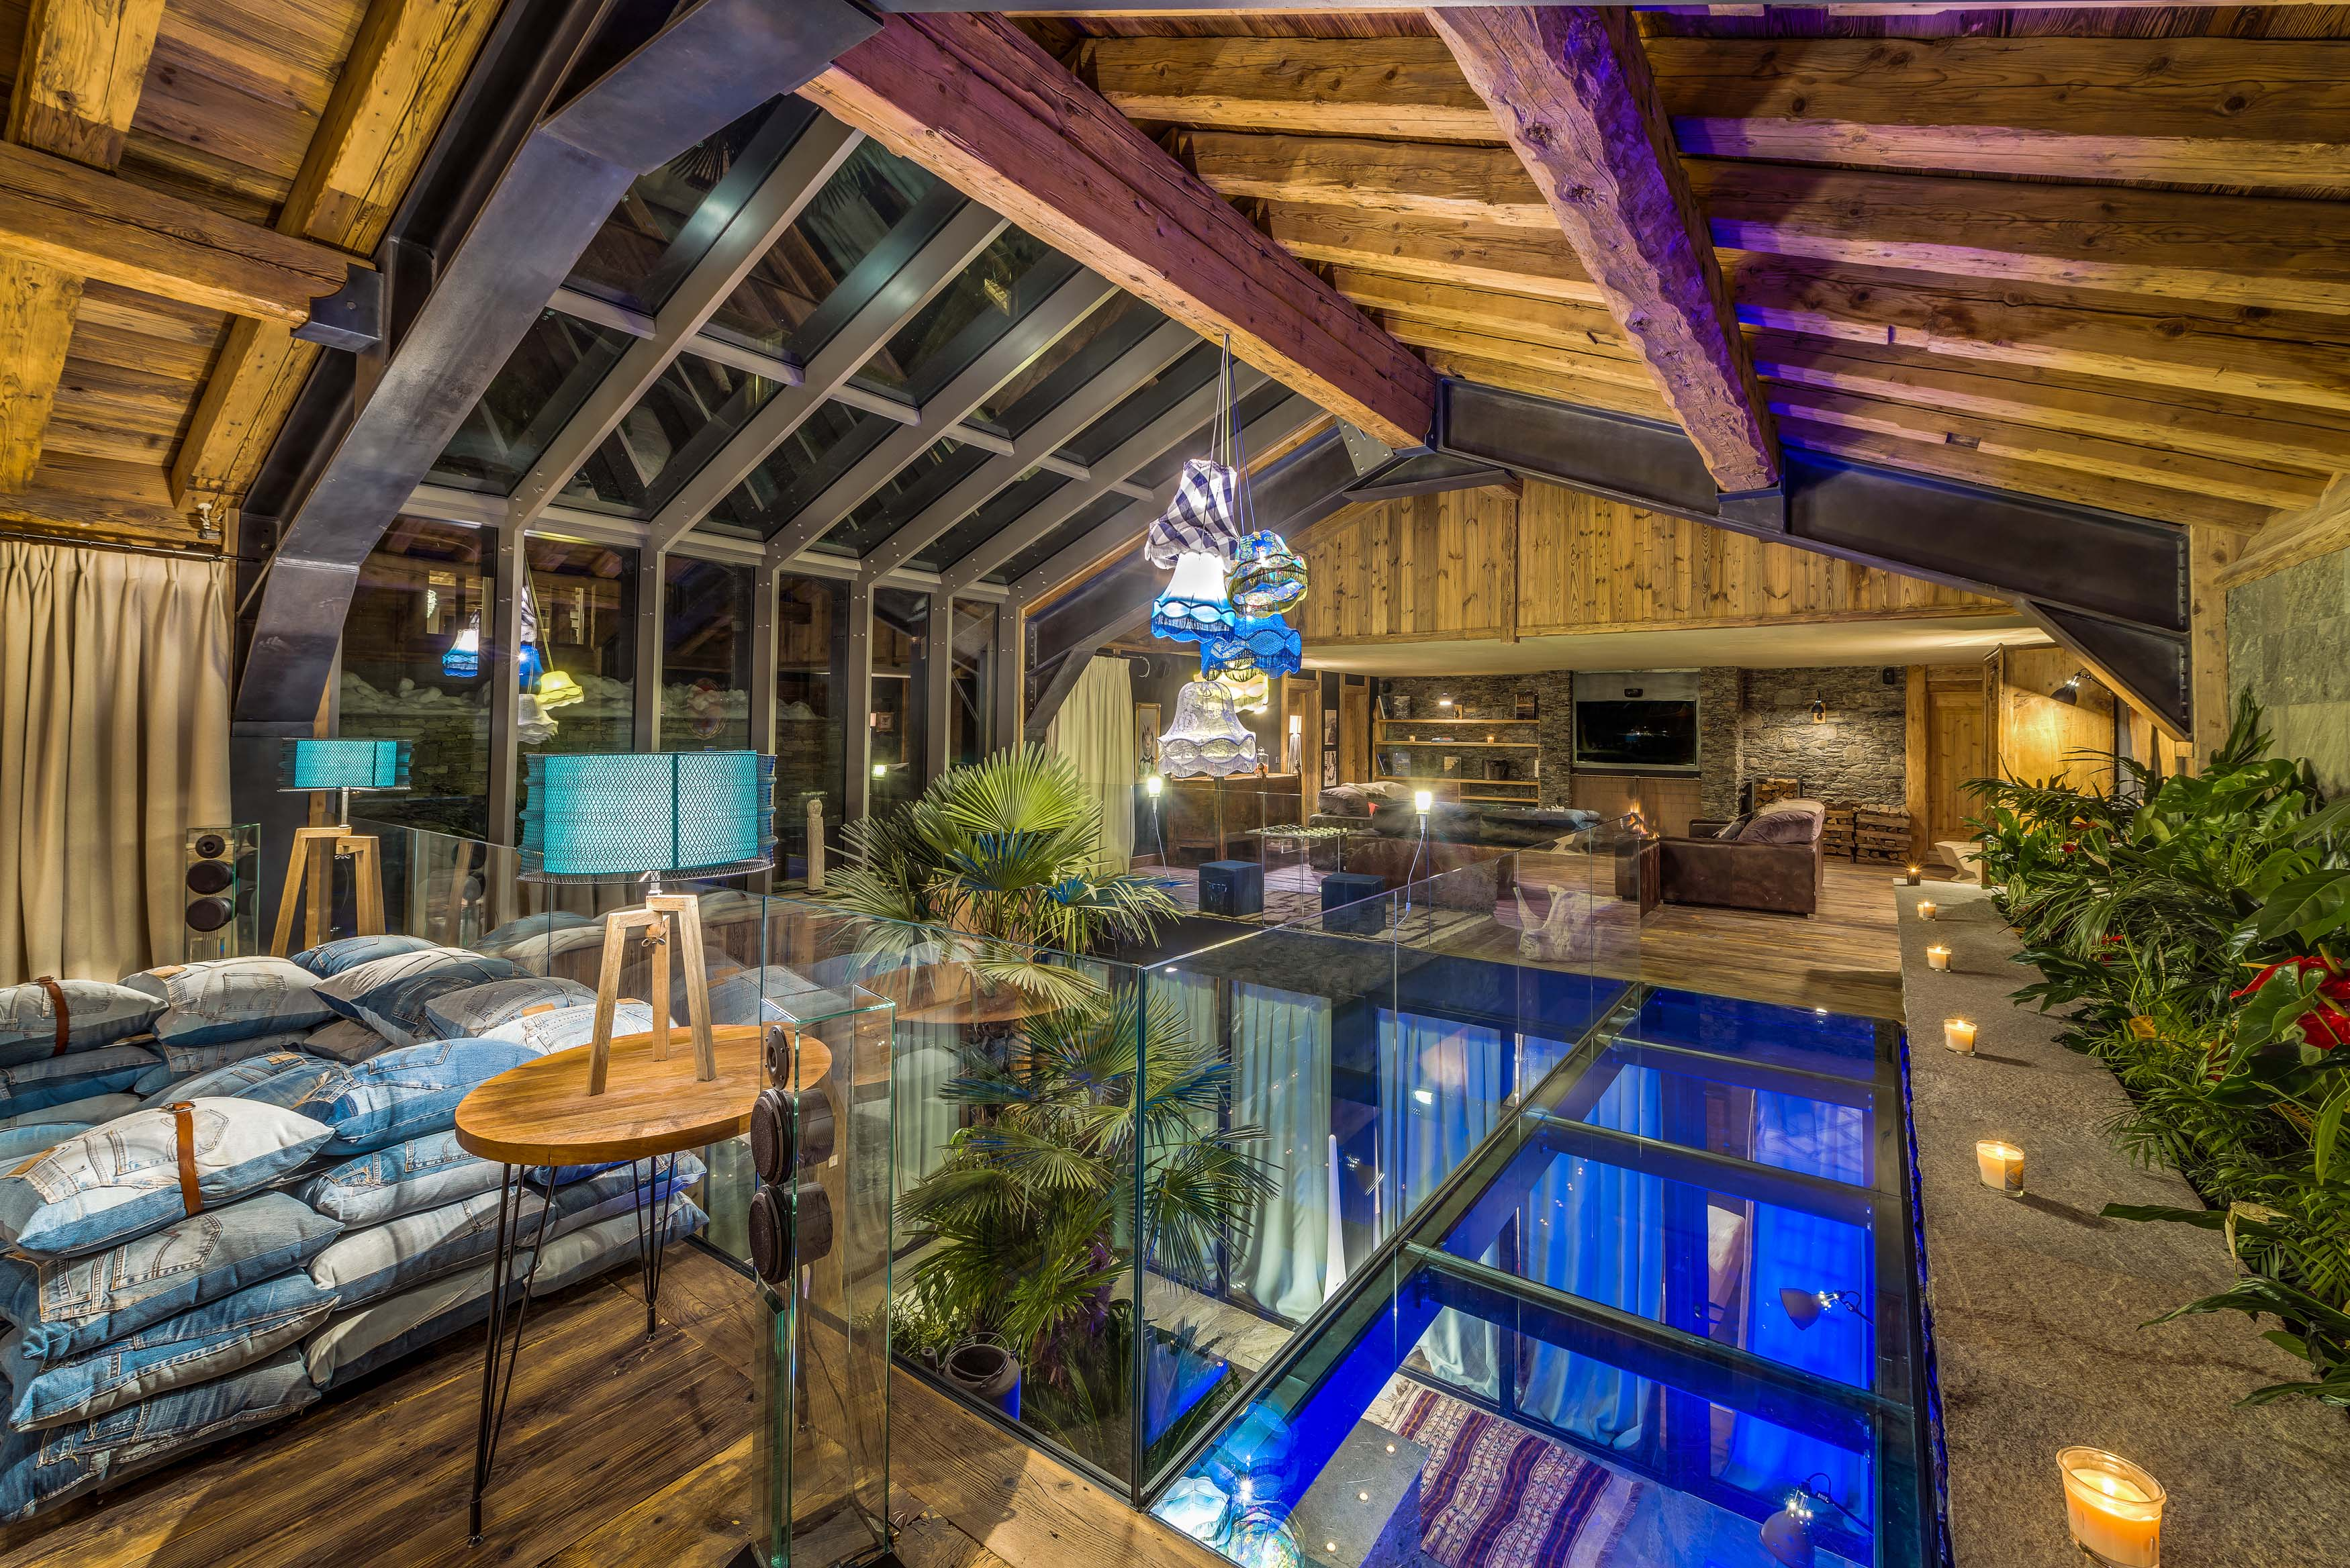 Chalet Husky in Val d'Isere